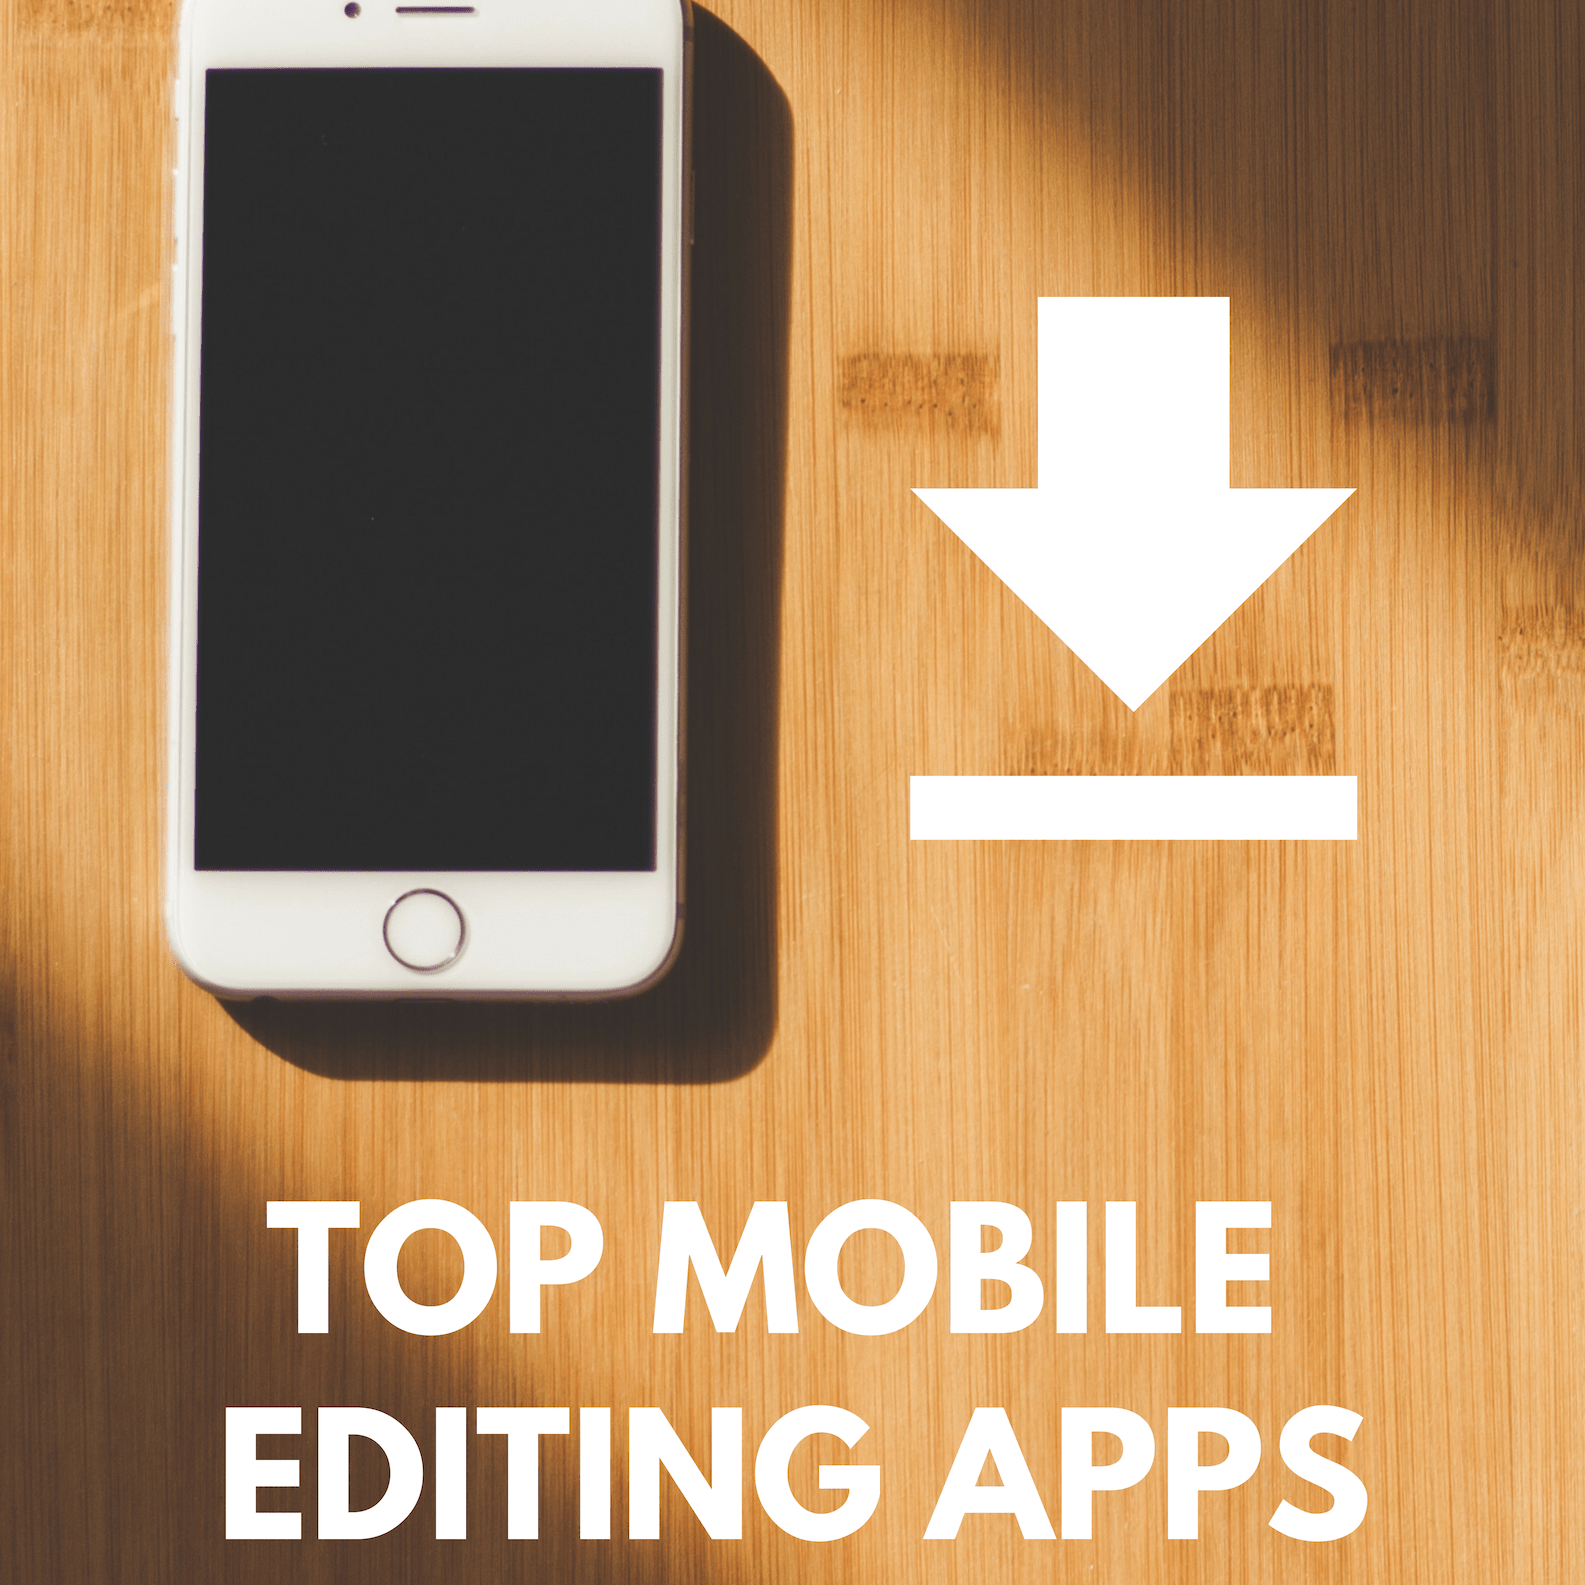 TOP 3 MOBILE EDITING APPS